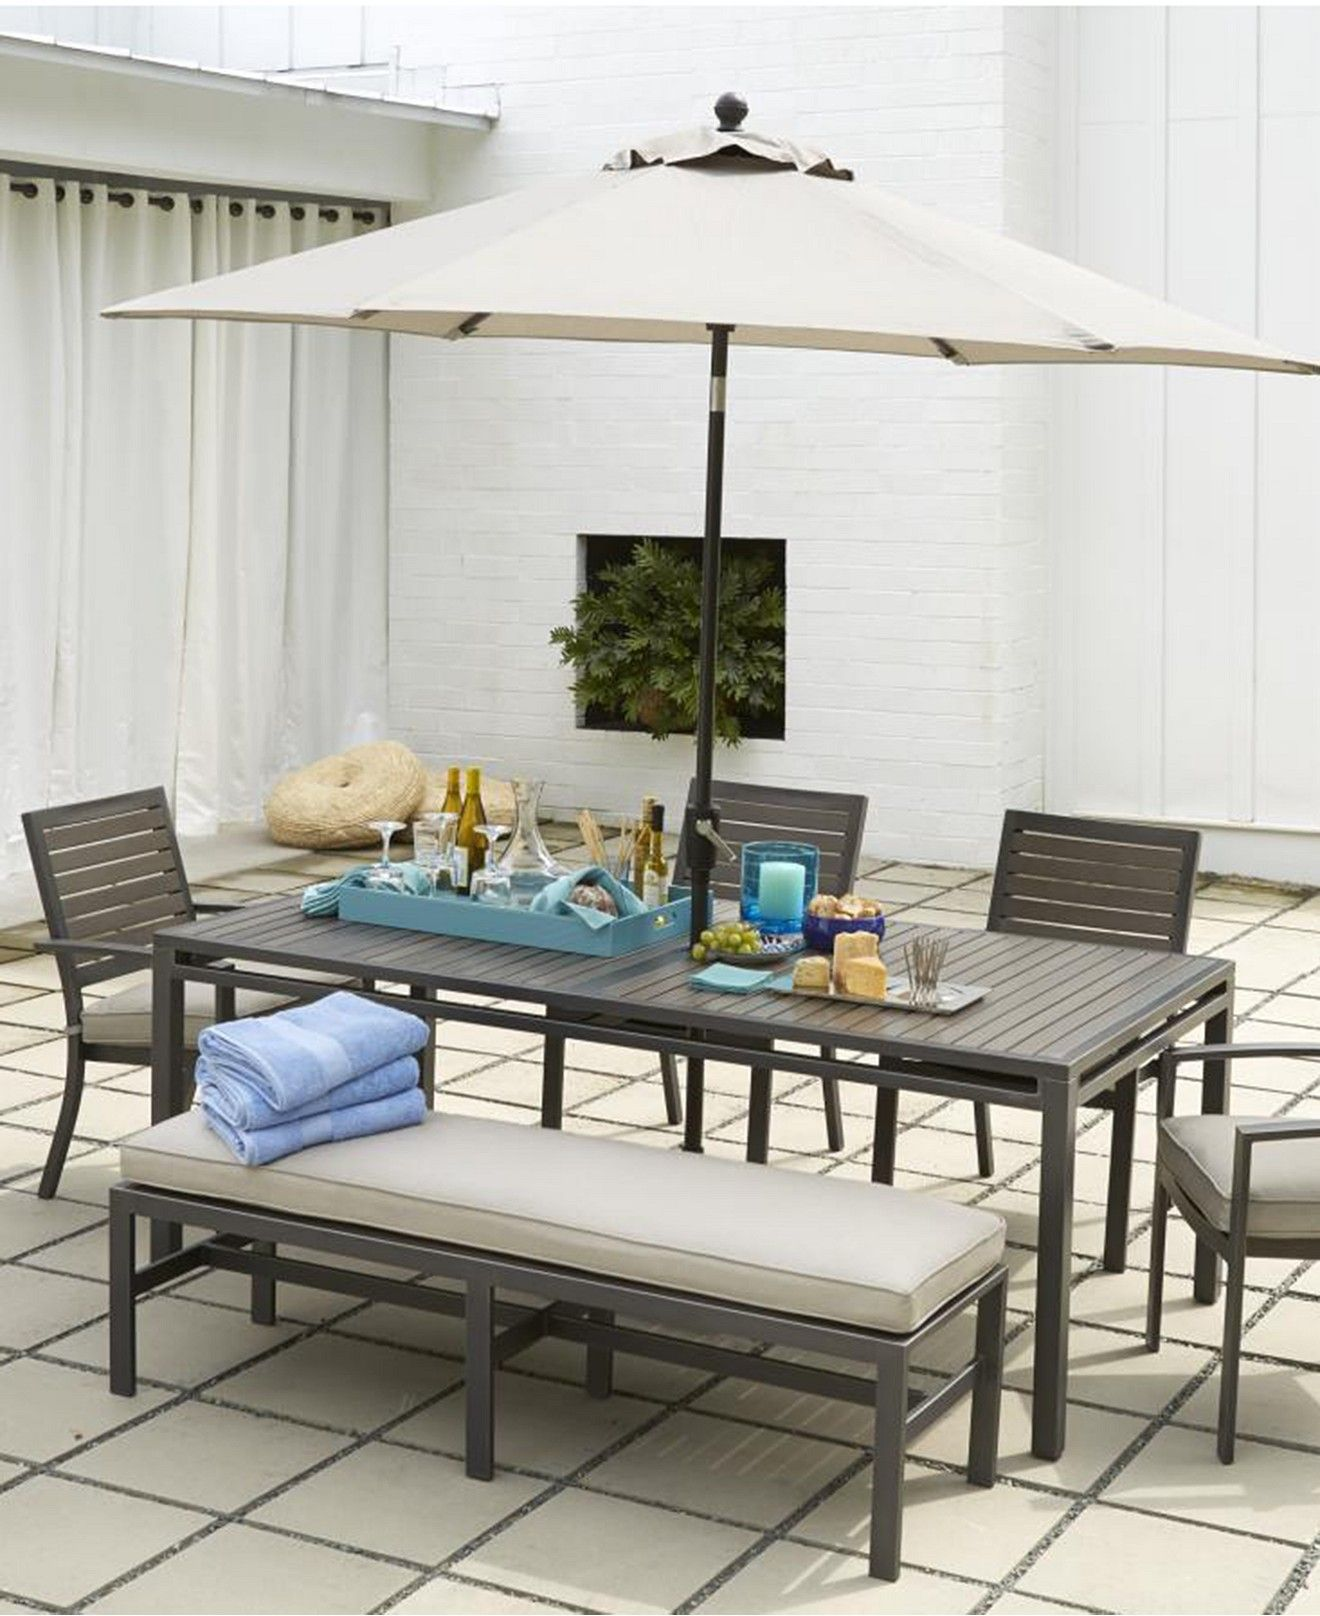 Marlough Outdoor Patio Furniture Dining Sets & Pieces